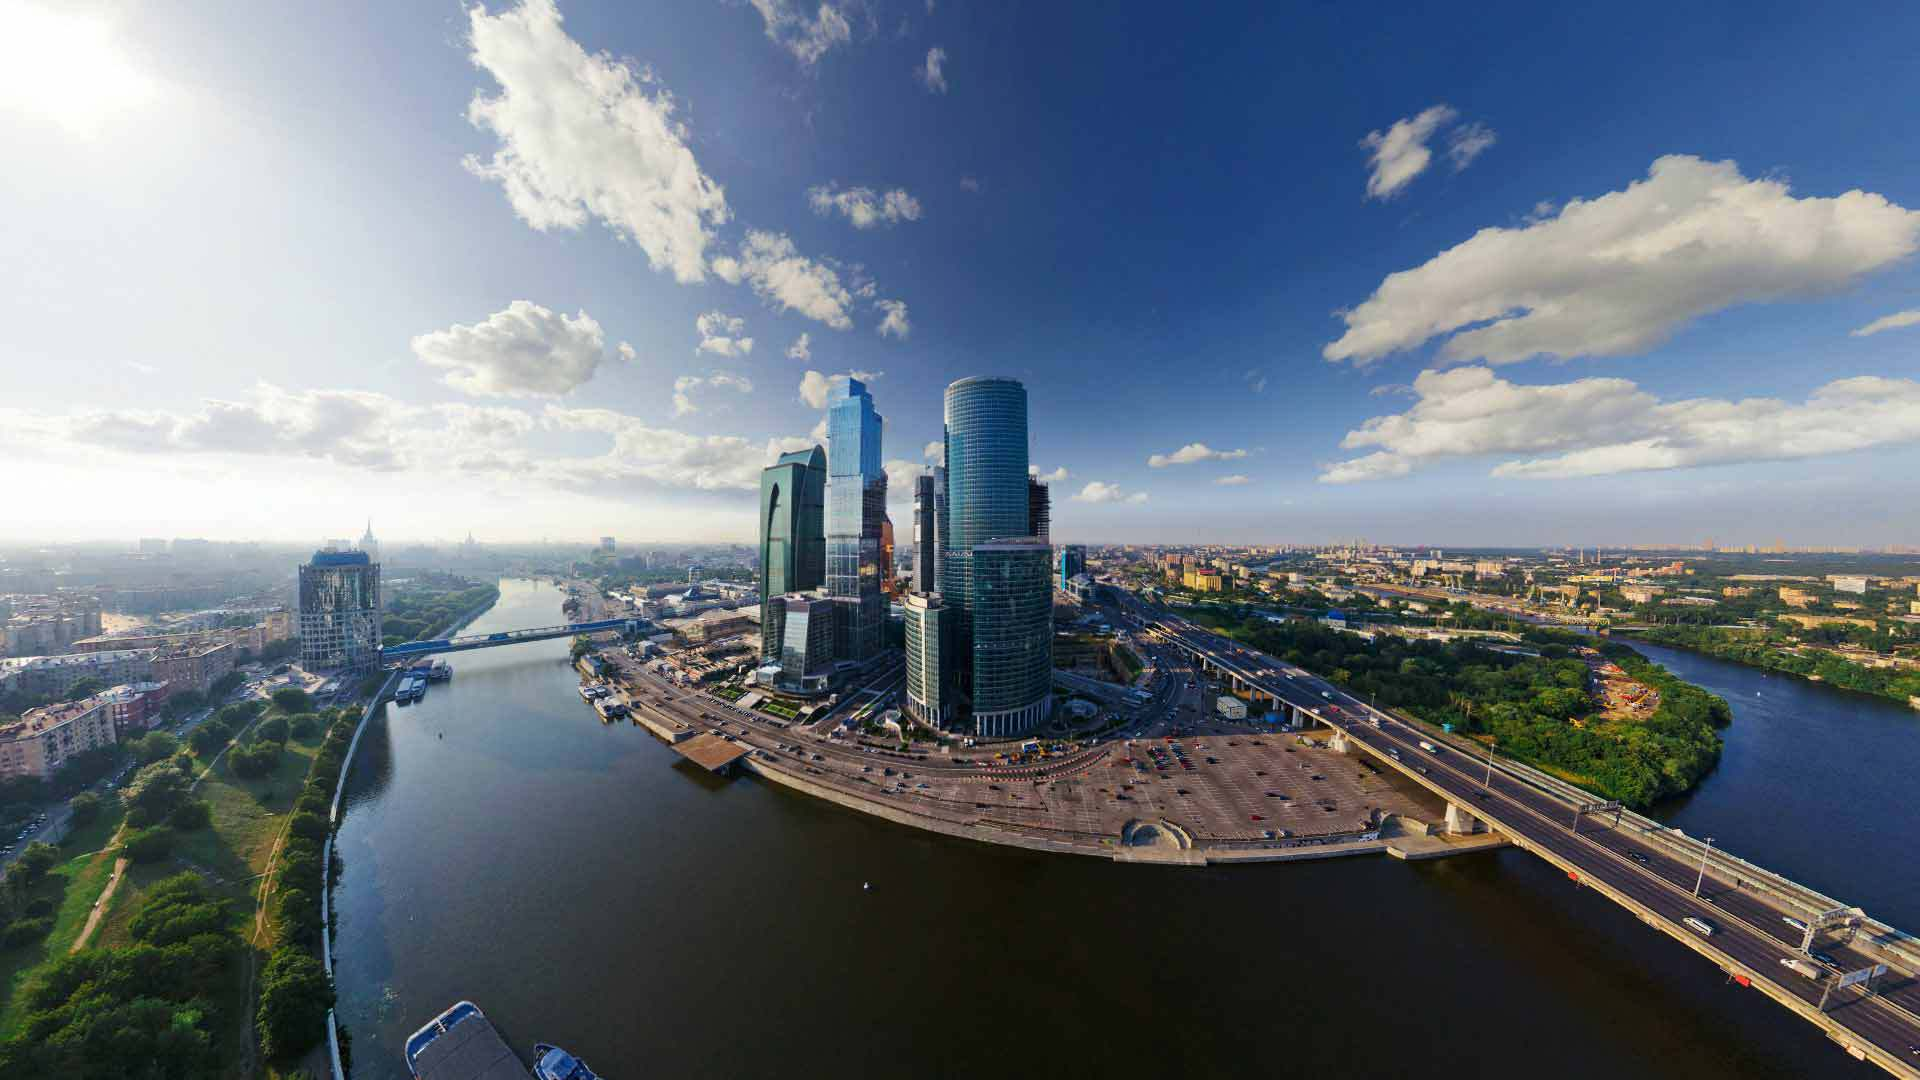 Amazing view of moscow wallpapers and images - wallpapers ...